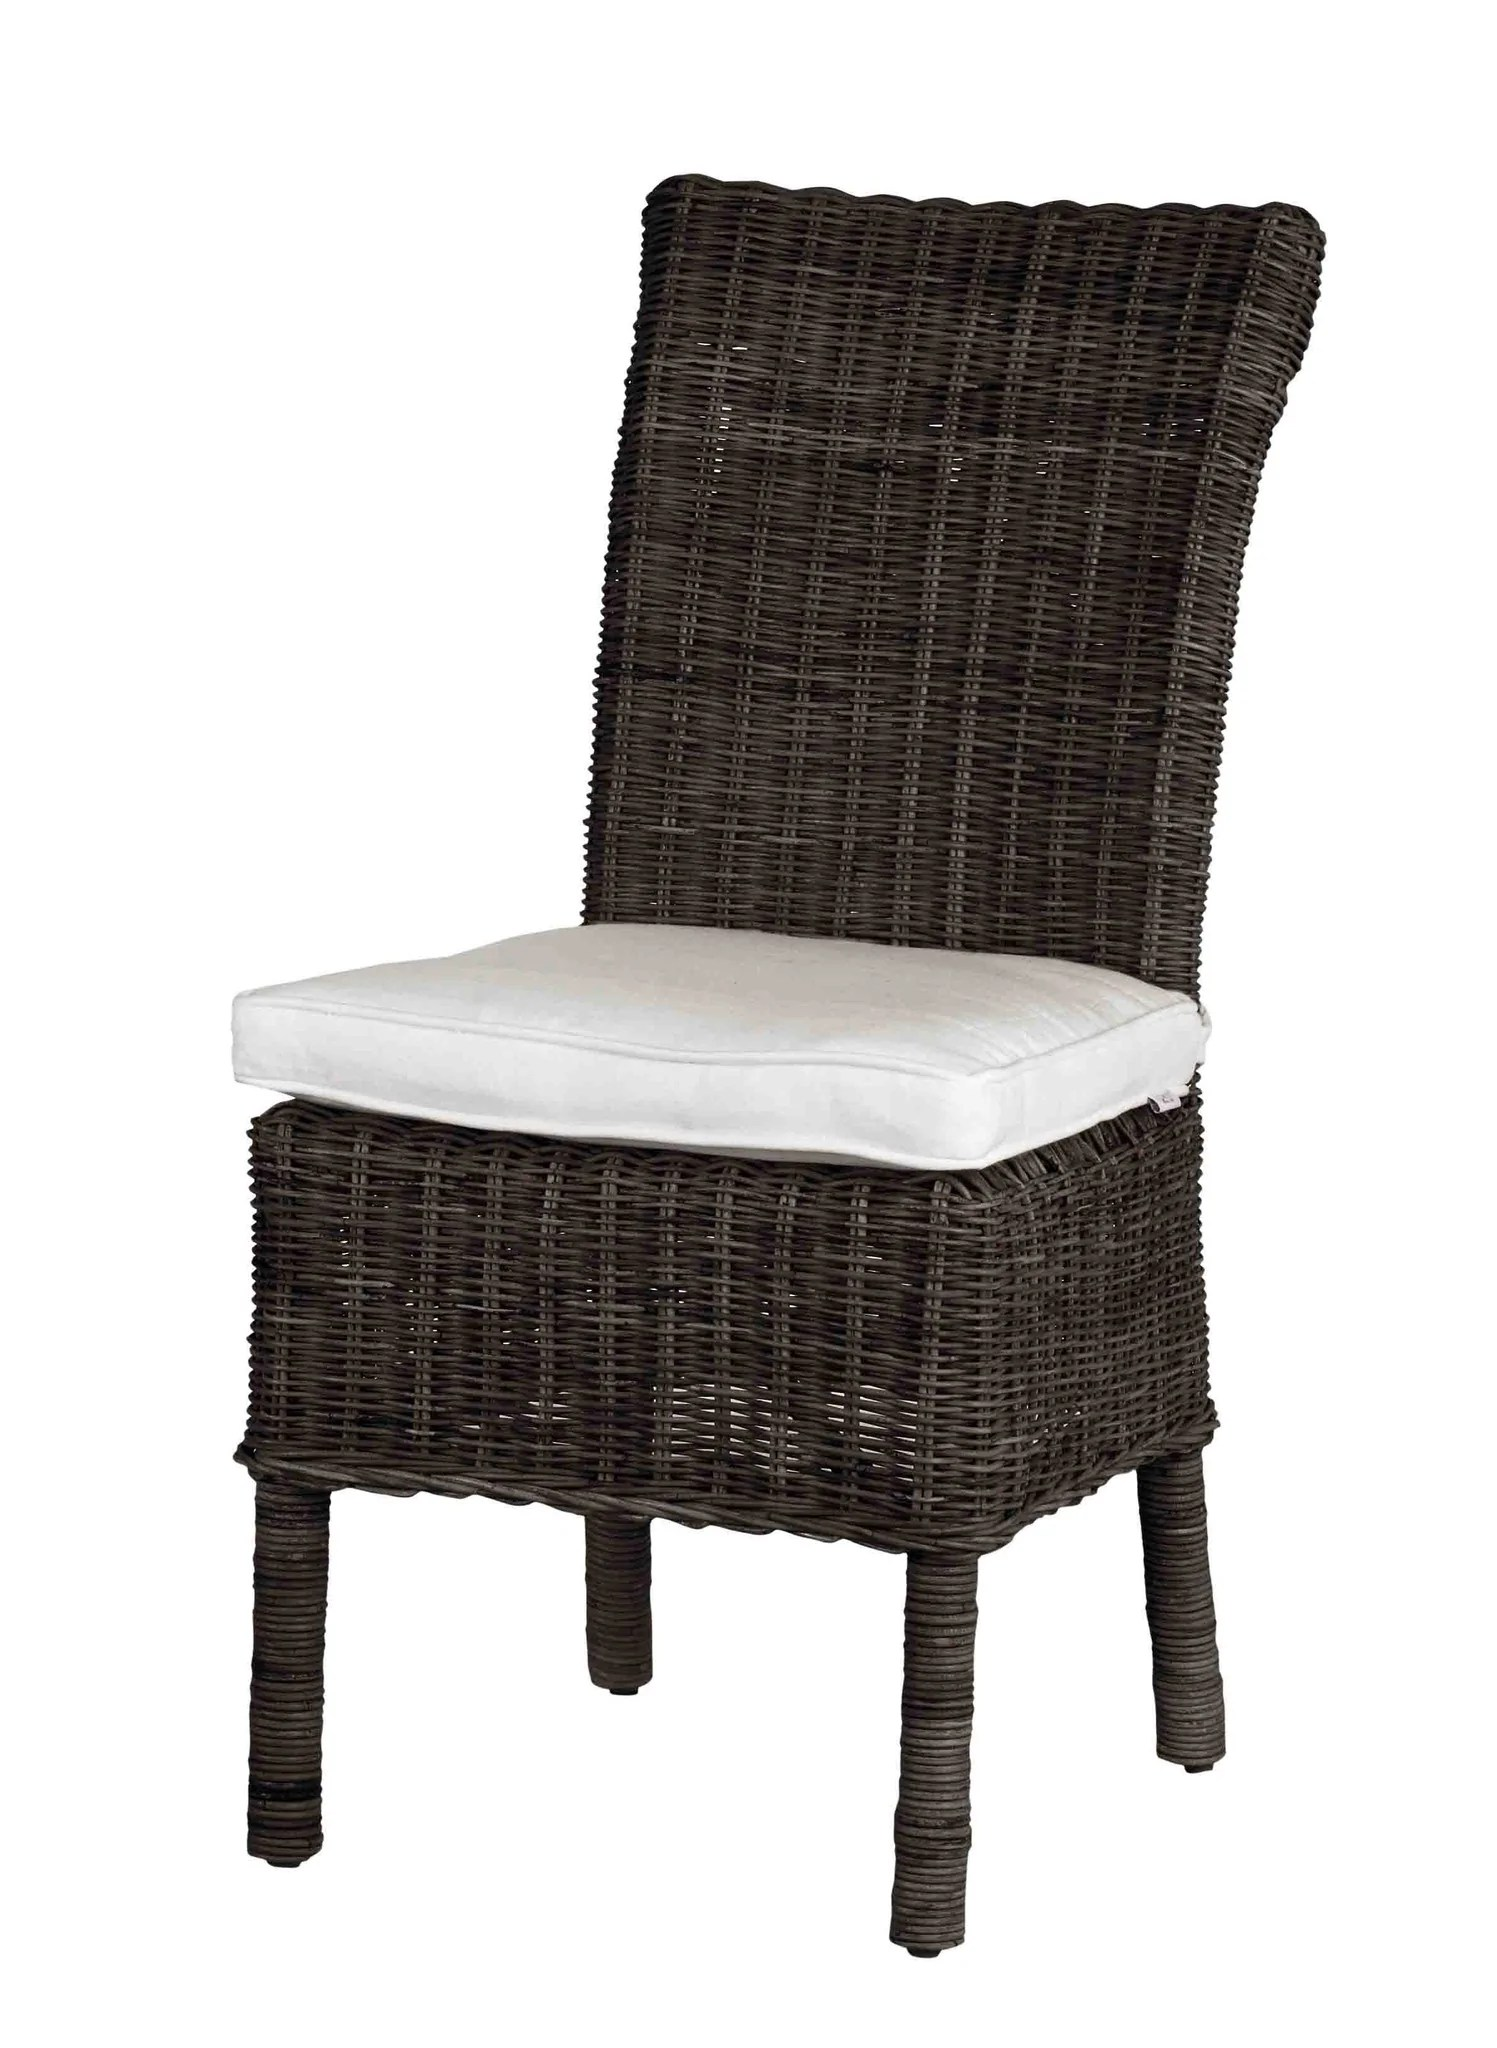 Outdoor Wicker Dining Chairs Fara Outdoor Dining Chair